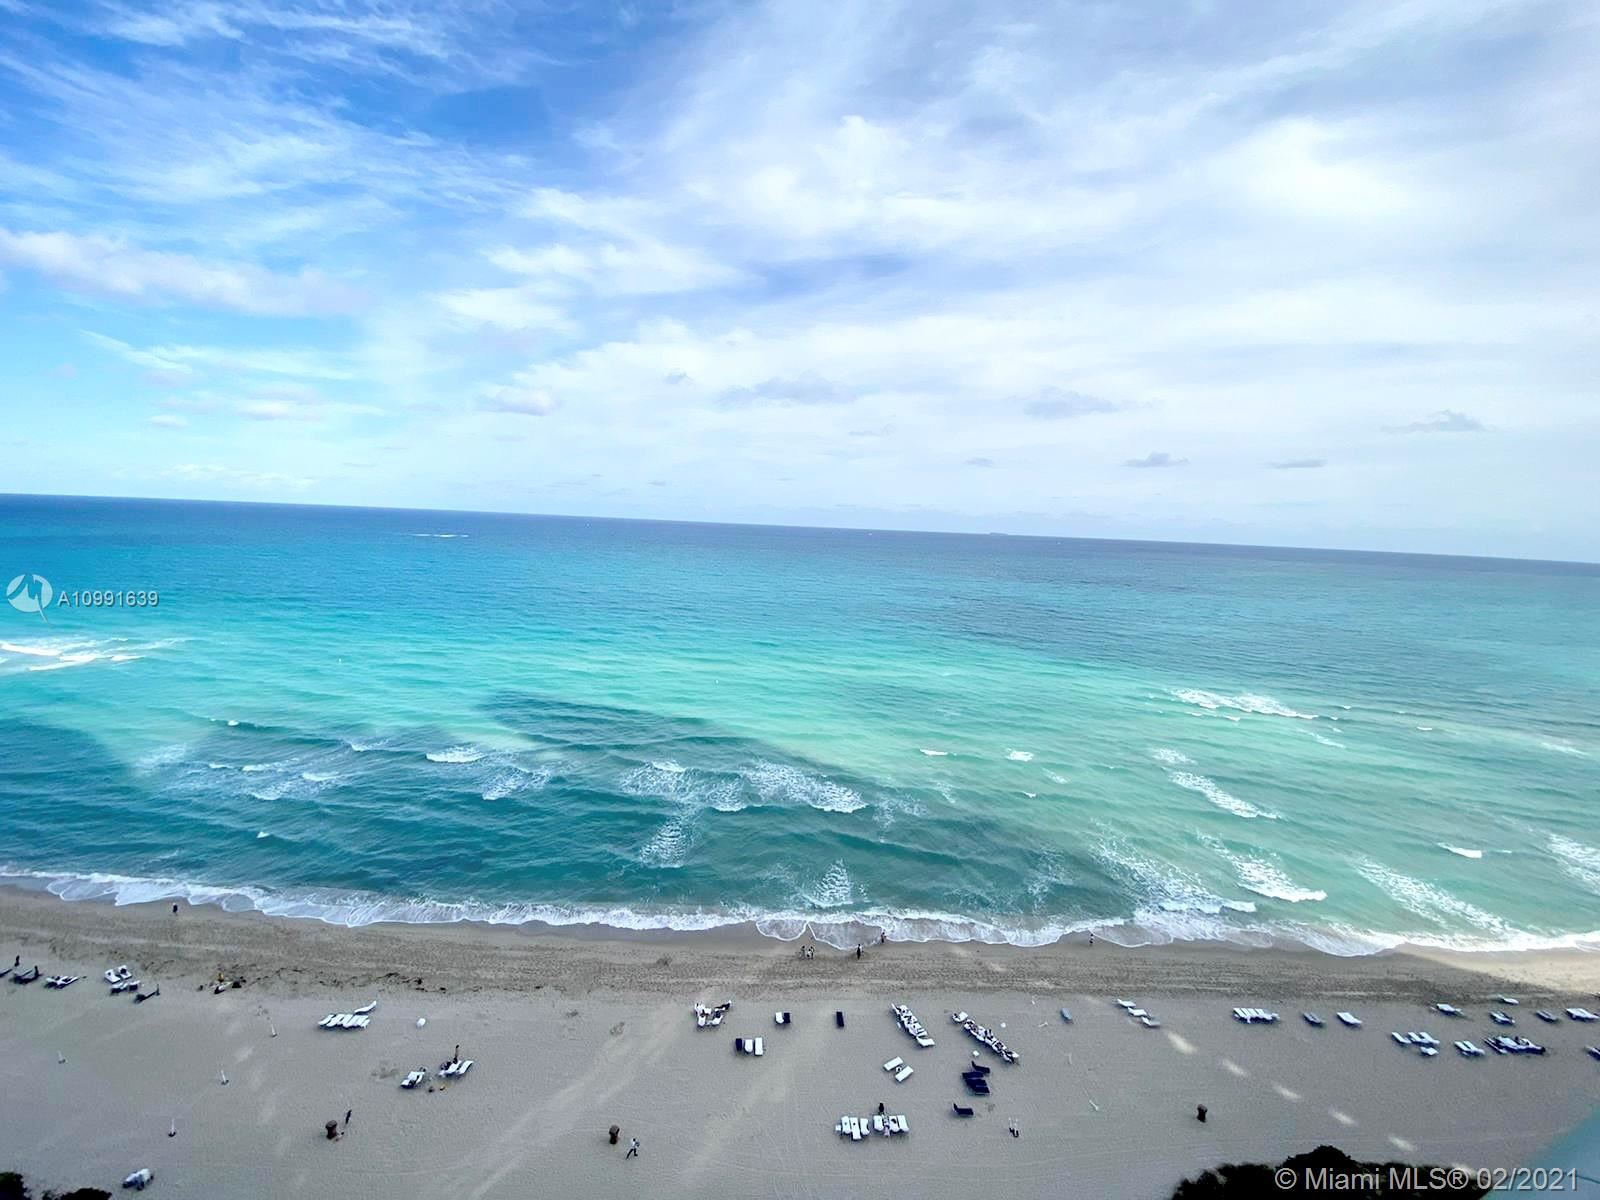 17121 Collins Ave #1903, Sunny Isles, FL 33160 - #: A10991639